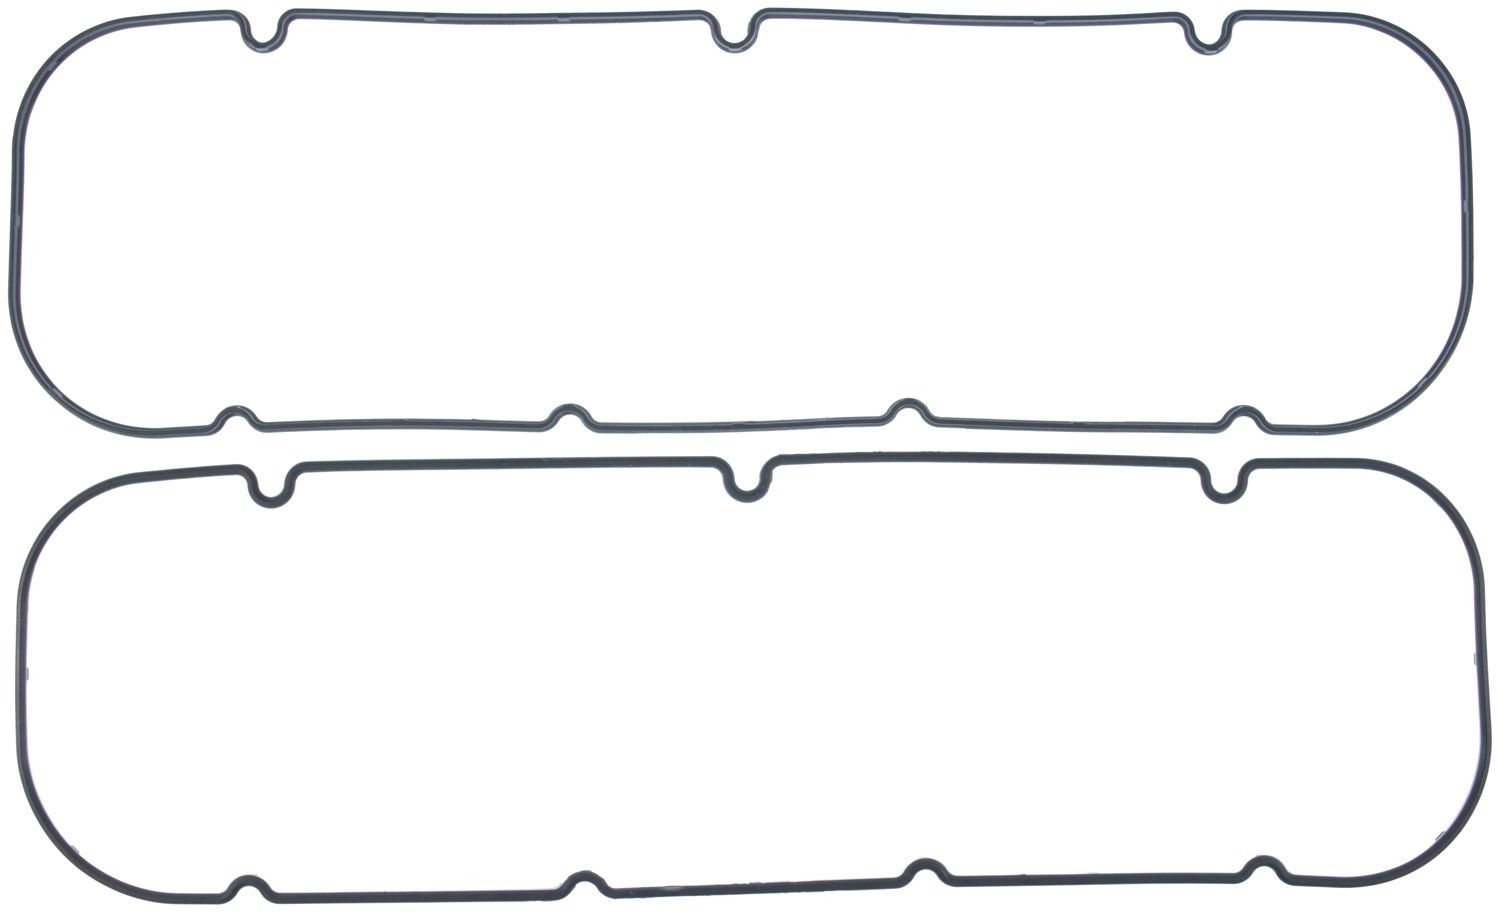 1991 To 2000 Chevy Big Block 454 Engine Valve Cover Gasket Set Mahle VS50182